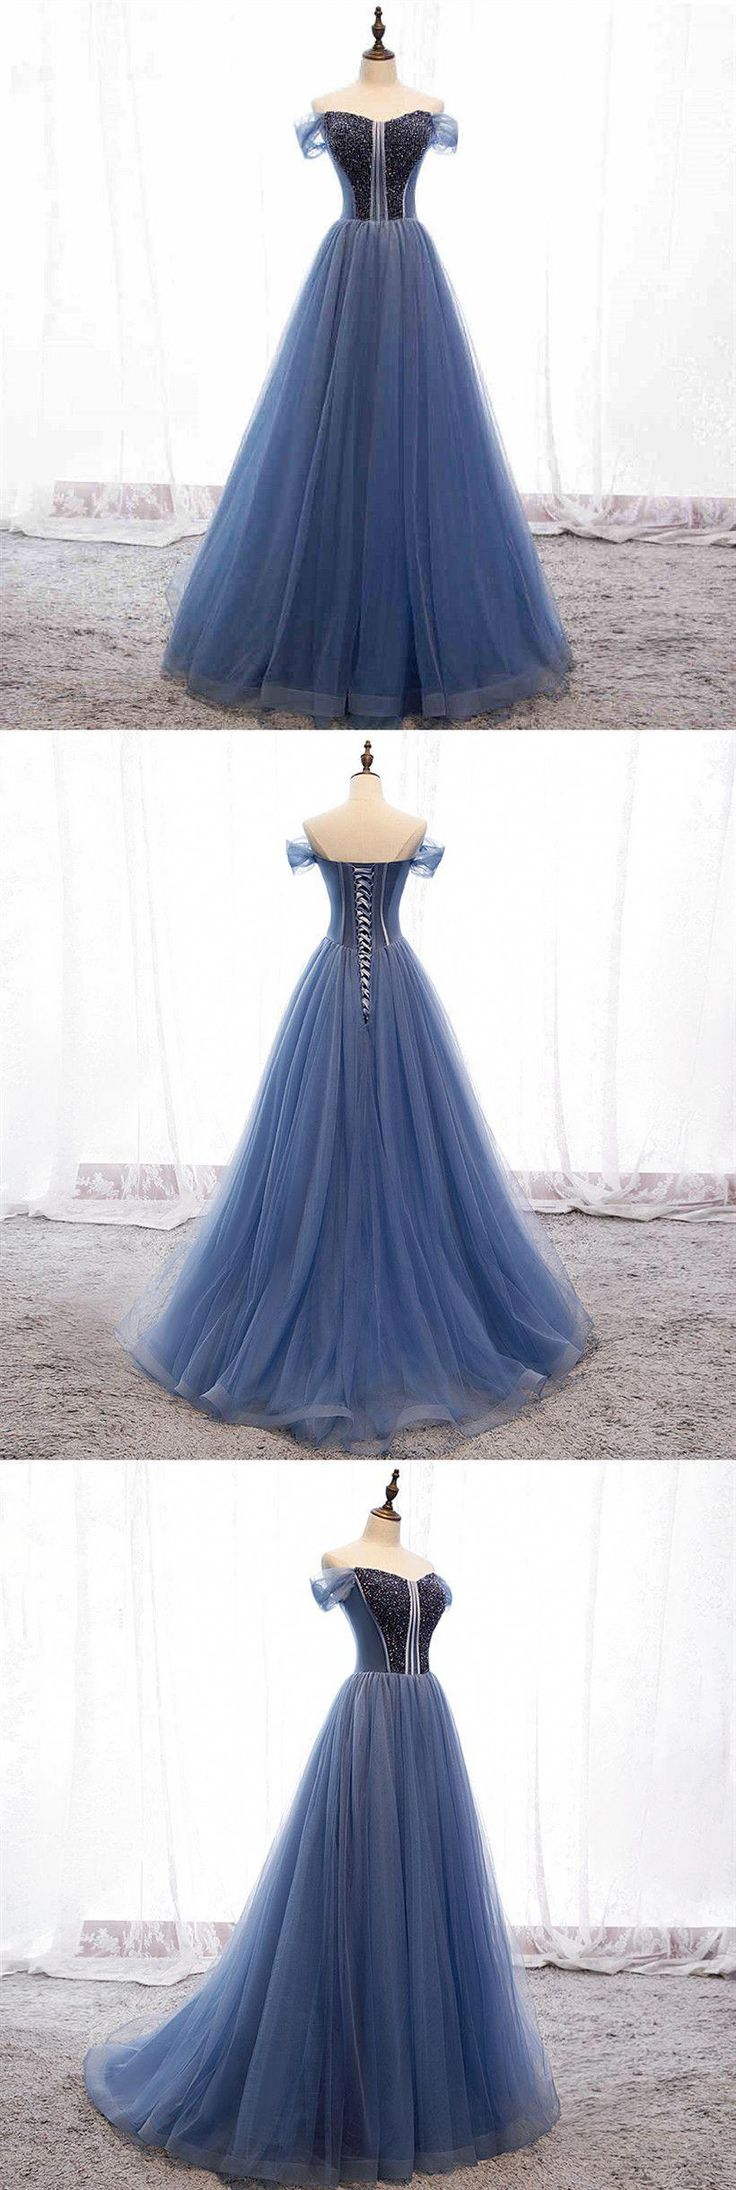 Cap Sleeves Beading A Line Prom Dress.prom,prom dress,prom dresses long,prom dress 2019.#prom #promdresses #promdresslong #promdress2019 #cheappromdre...